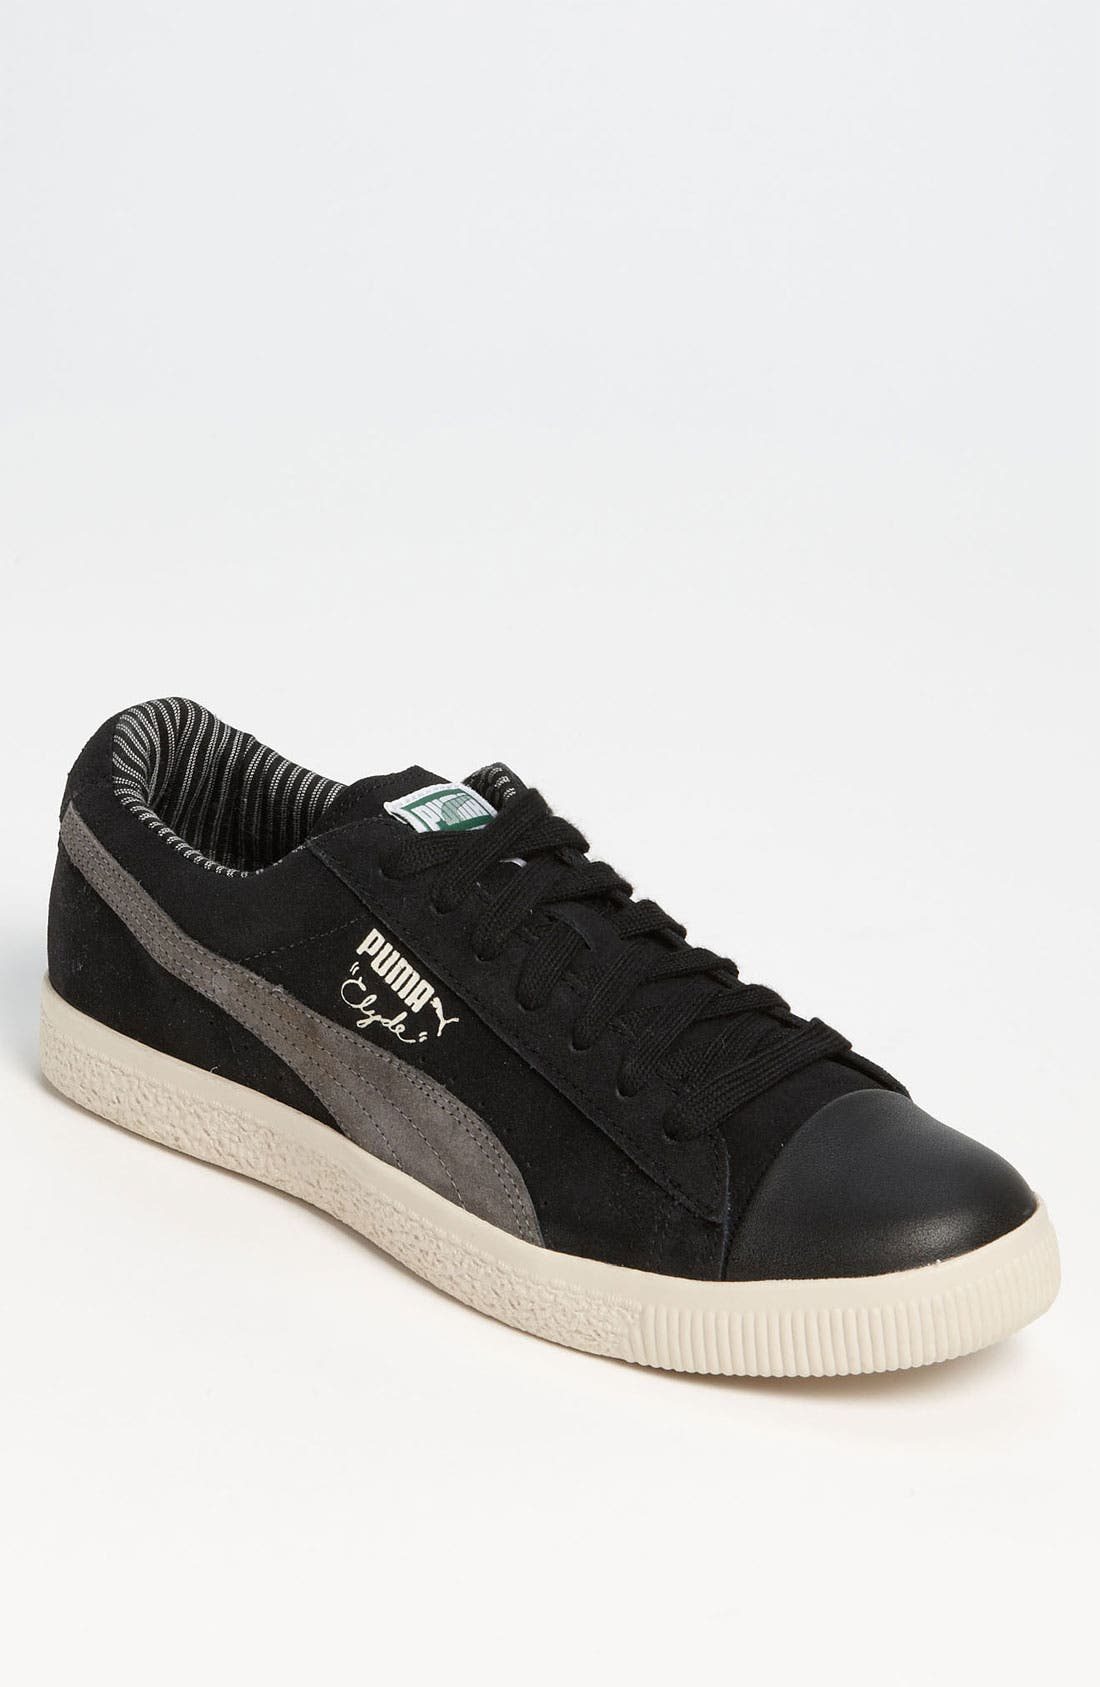 Main Image - PUMA 'Clyde TC Lodge' Sneaker (Men) (Online Exclusive)